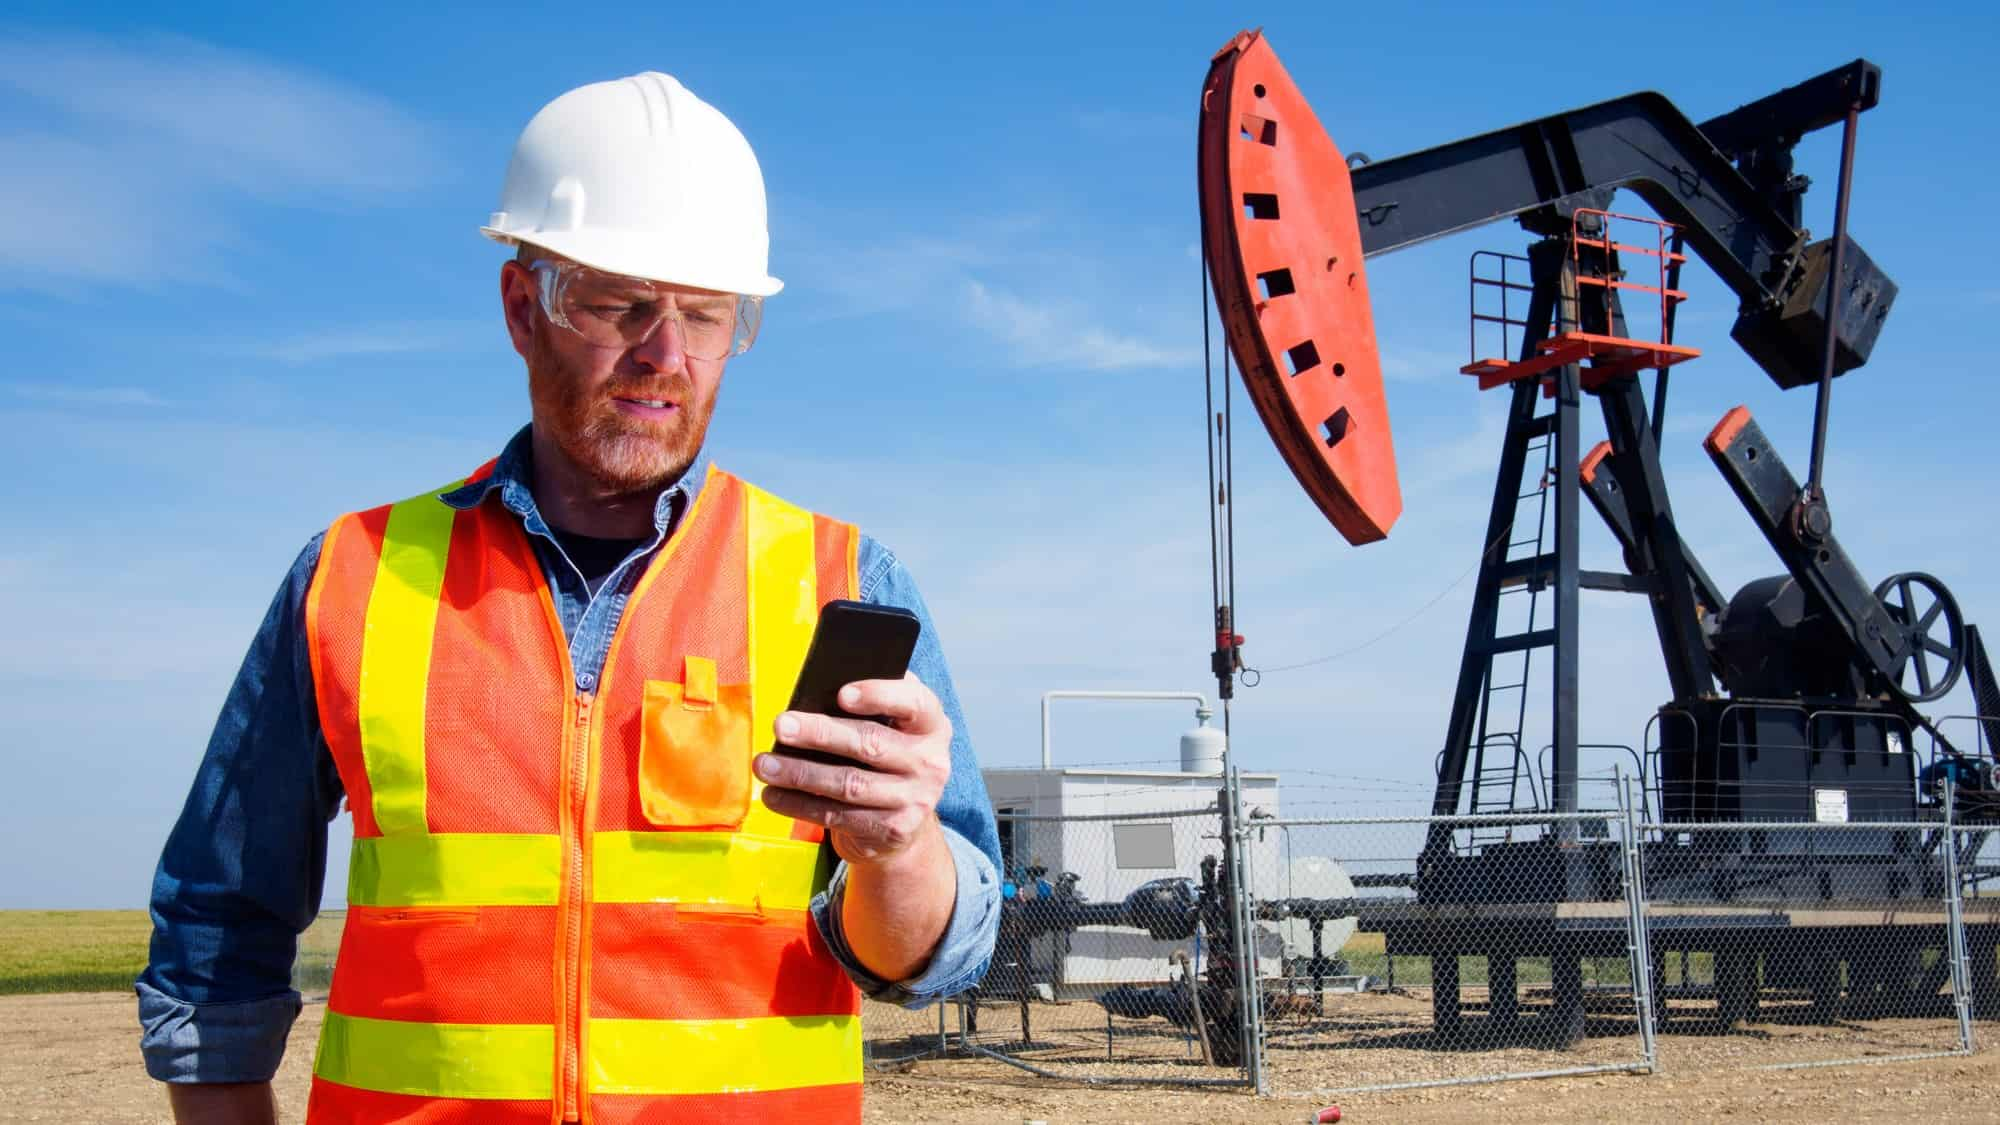 A worried miner looks at his phone in front of a massive drilling, indicating a share price drop for ASX mining companies